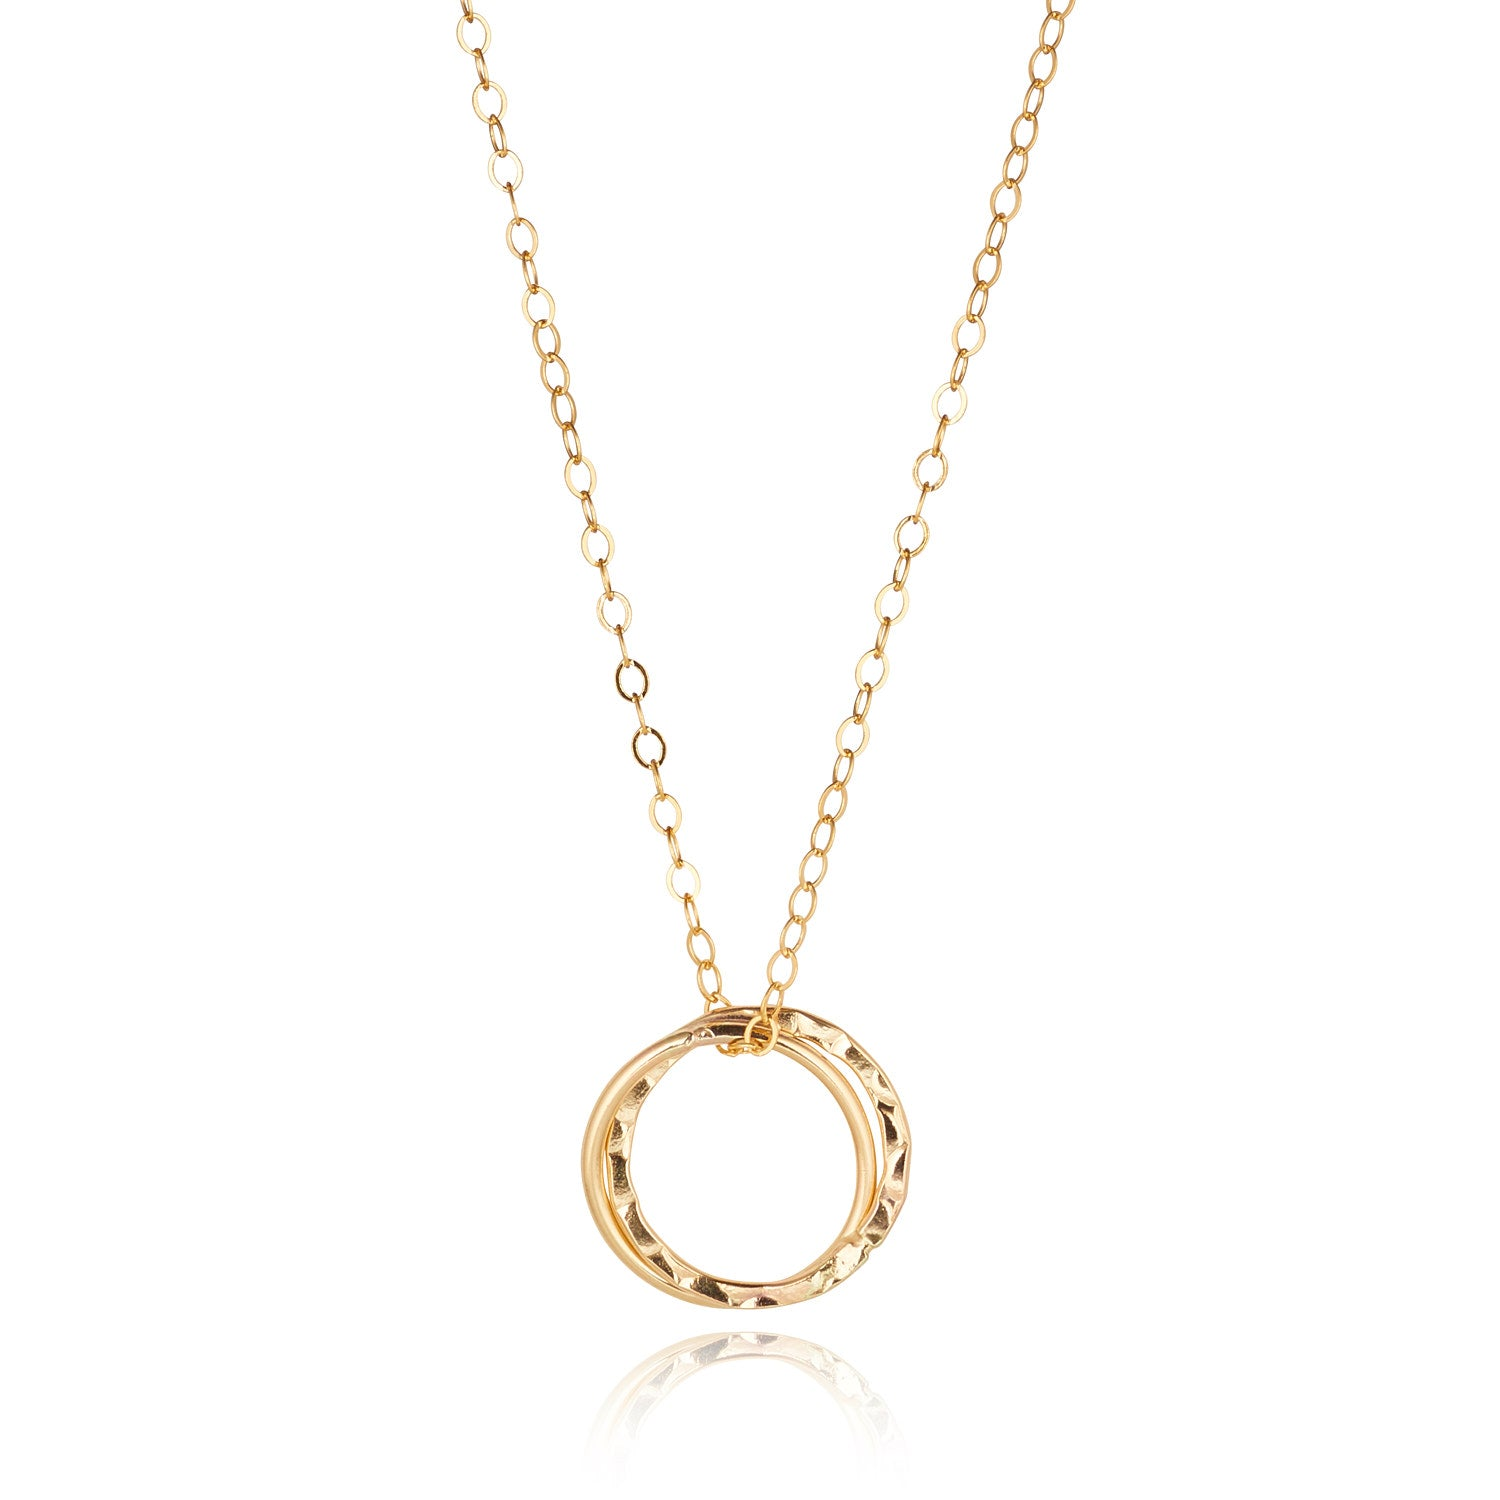 14kt Gold Filled Double Fused Circle Pendant - MoMuse Jewellery